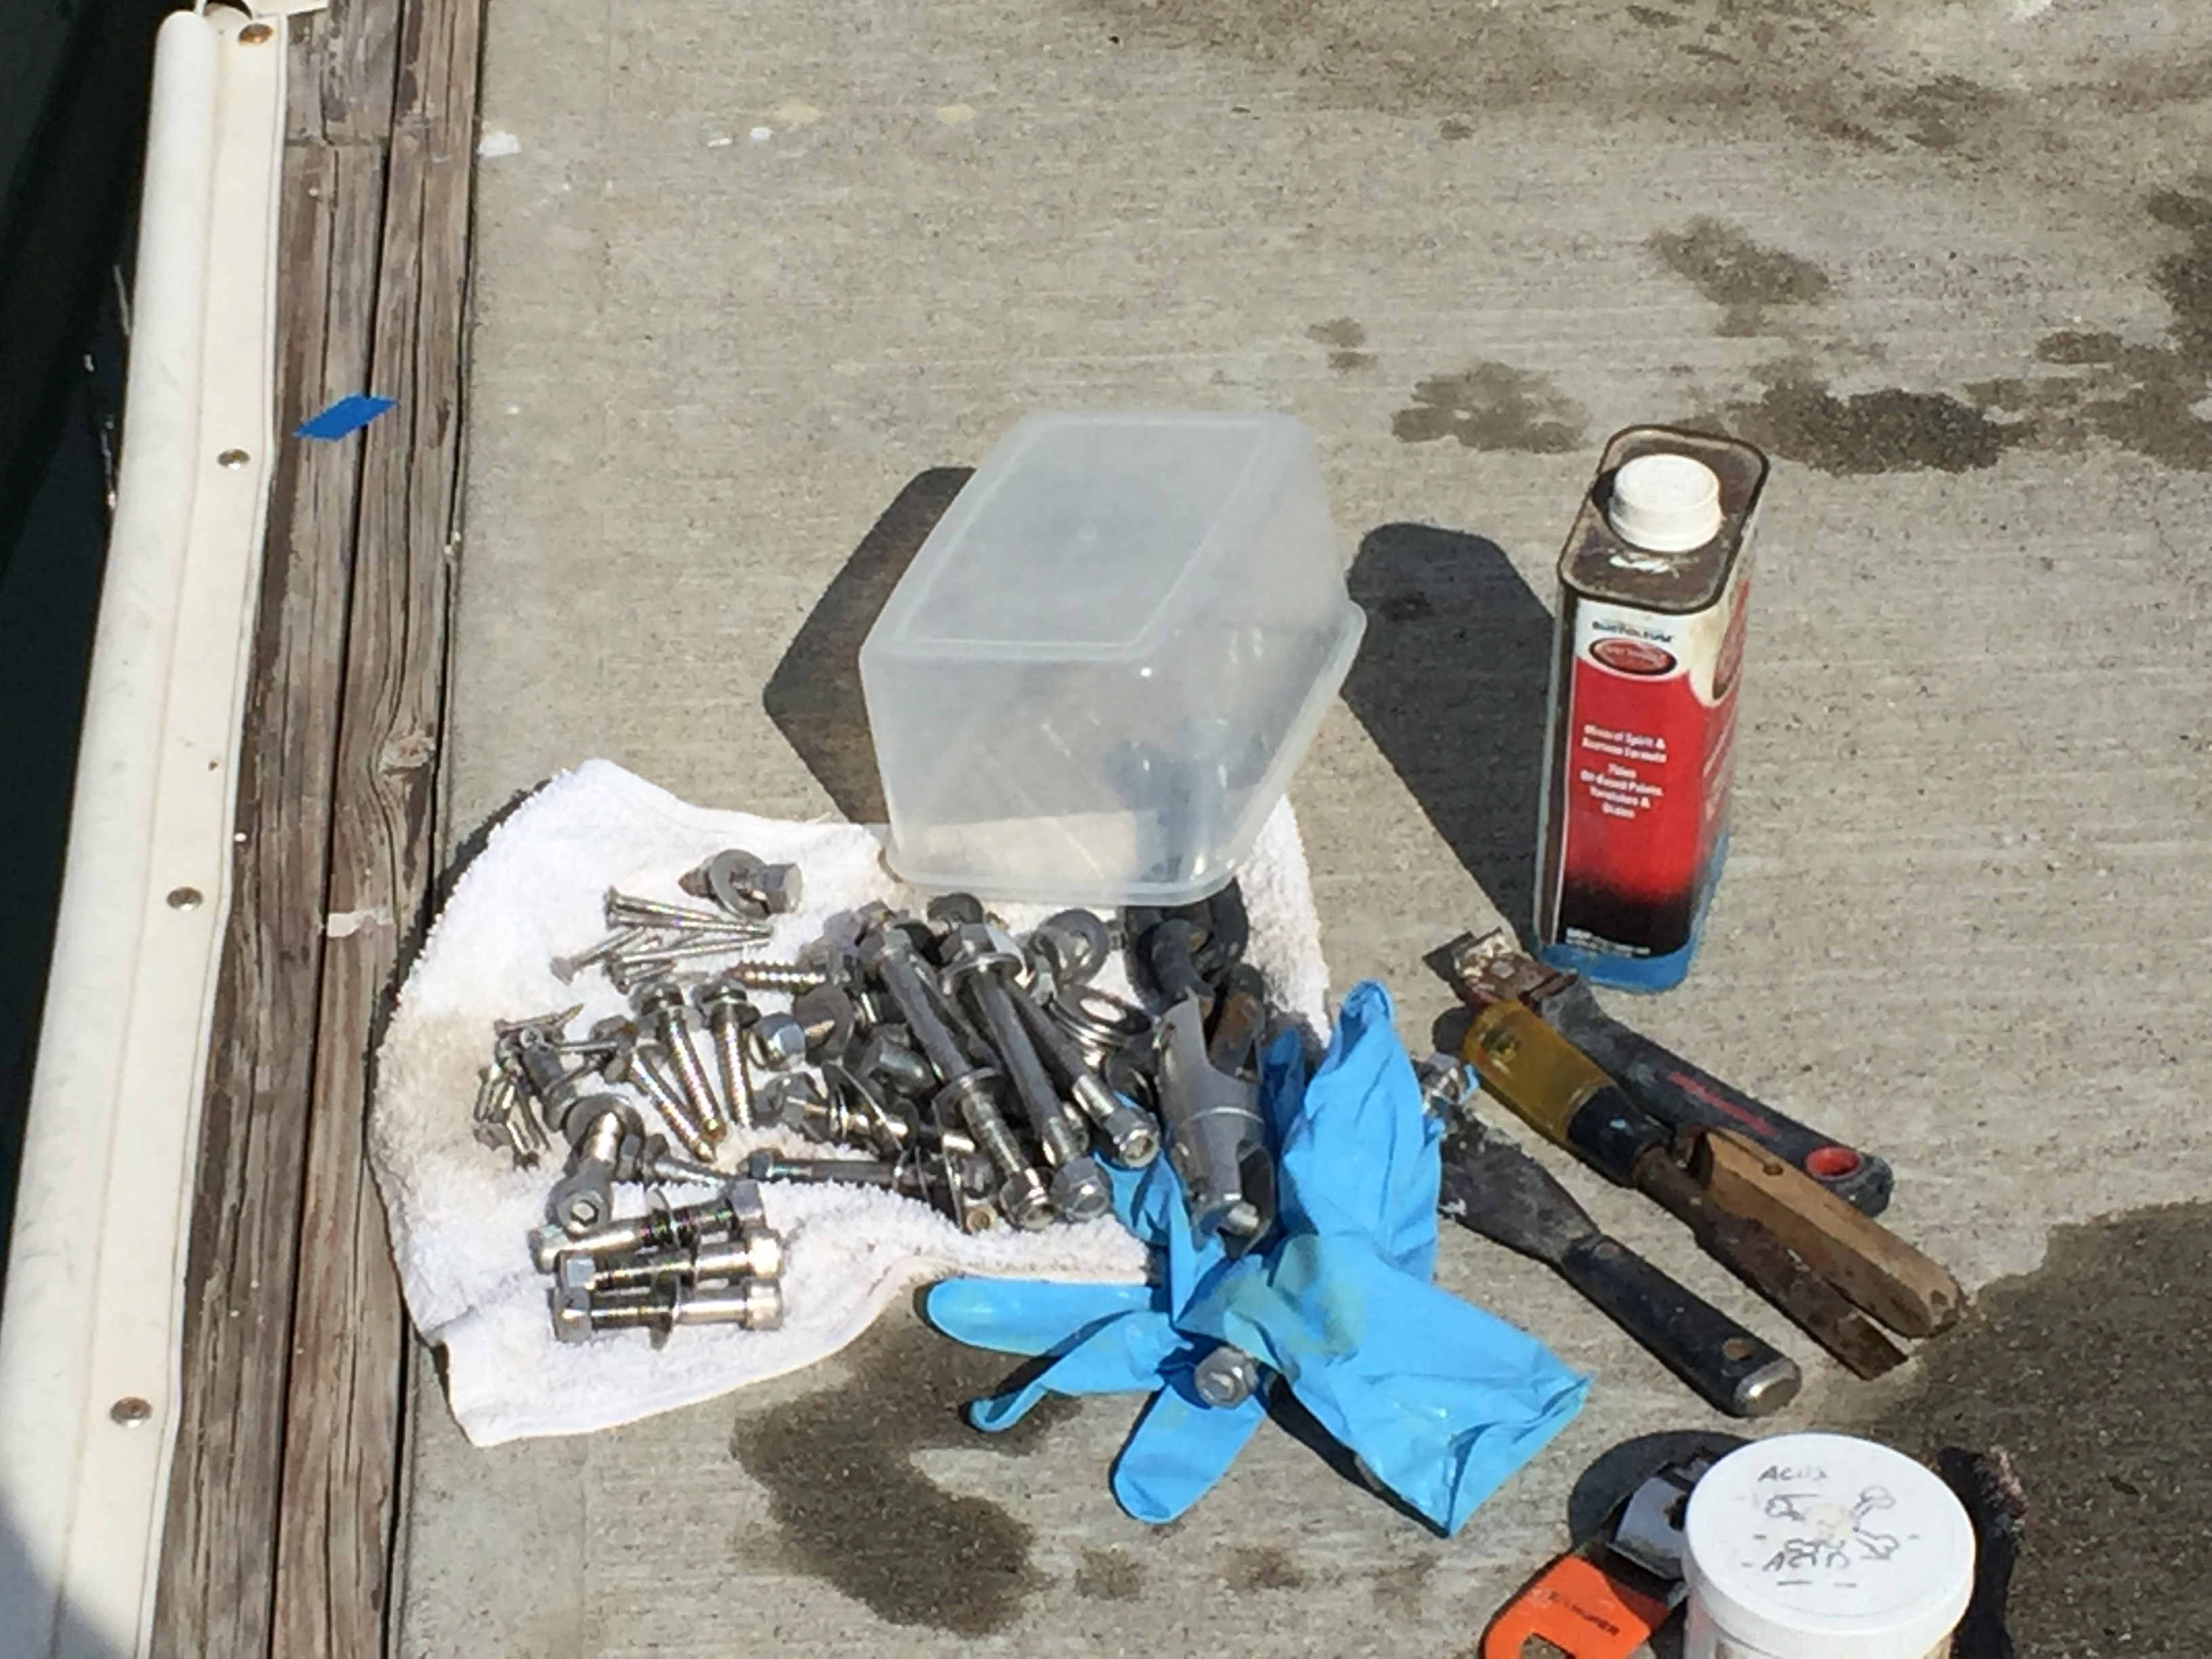 Just one of the many containers of cleaned fasteners.